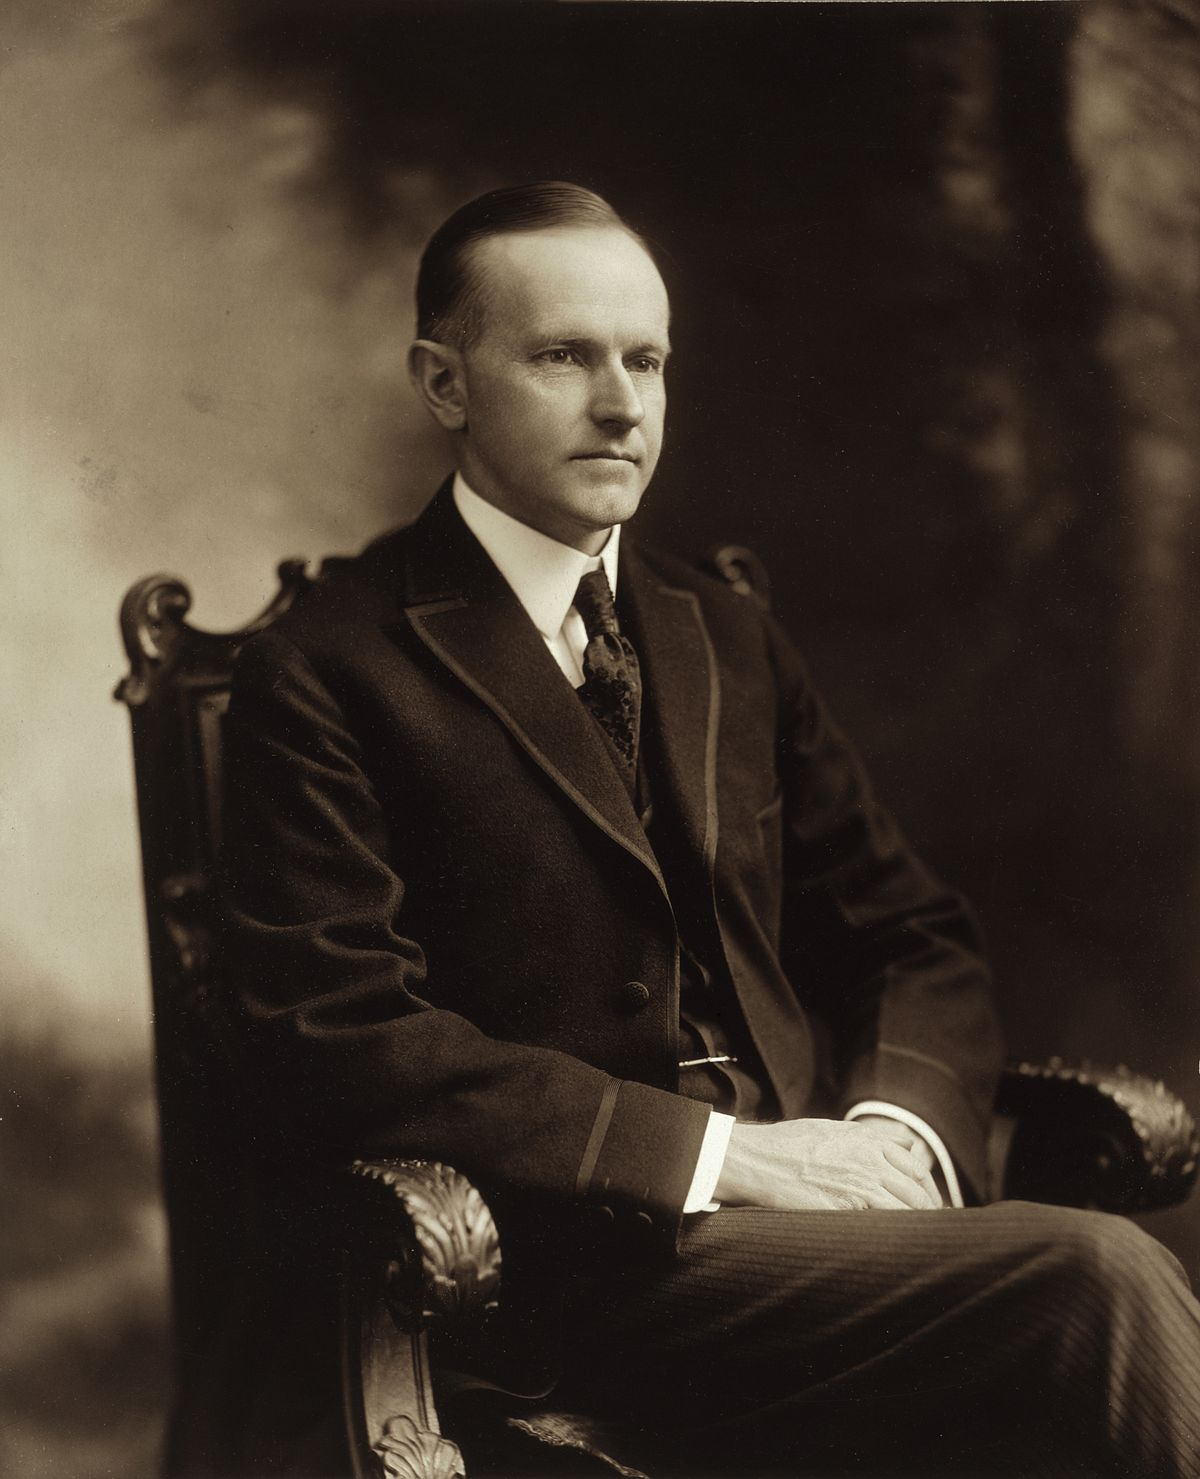 Calvin_Coolidge-6th cousin 3x removed